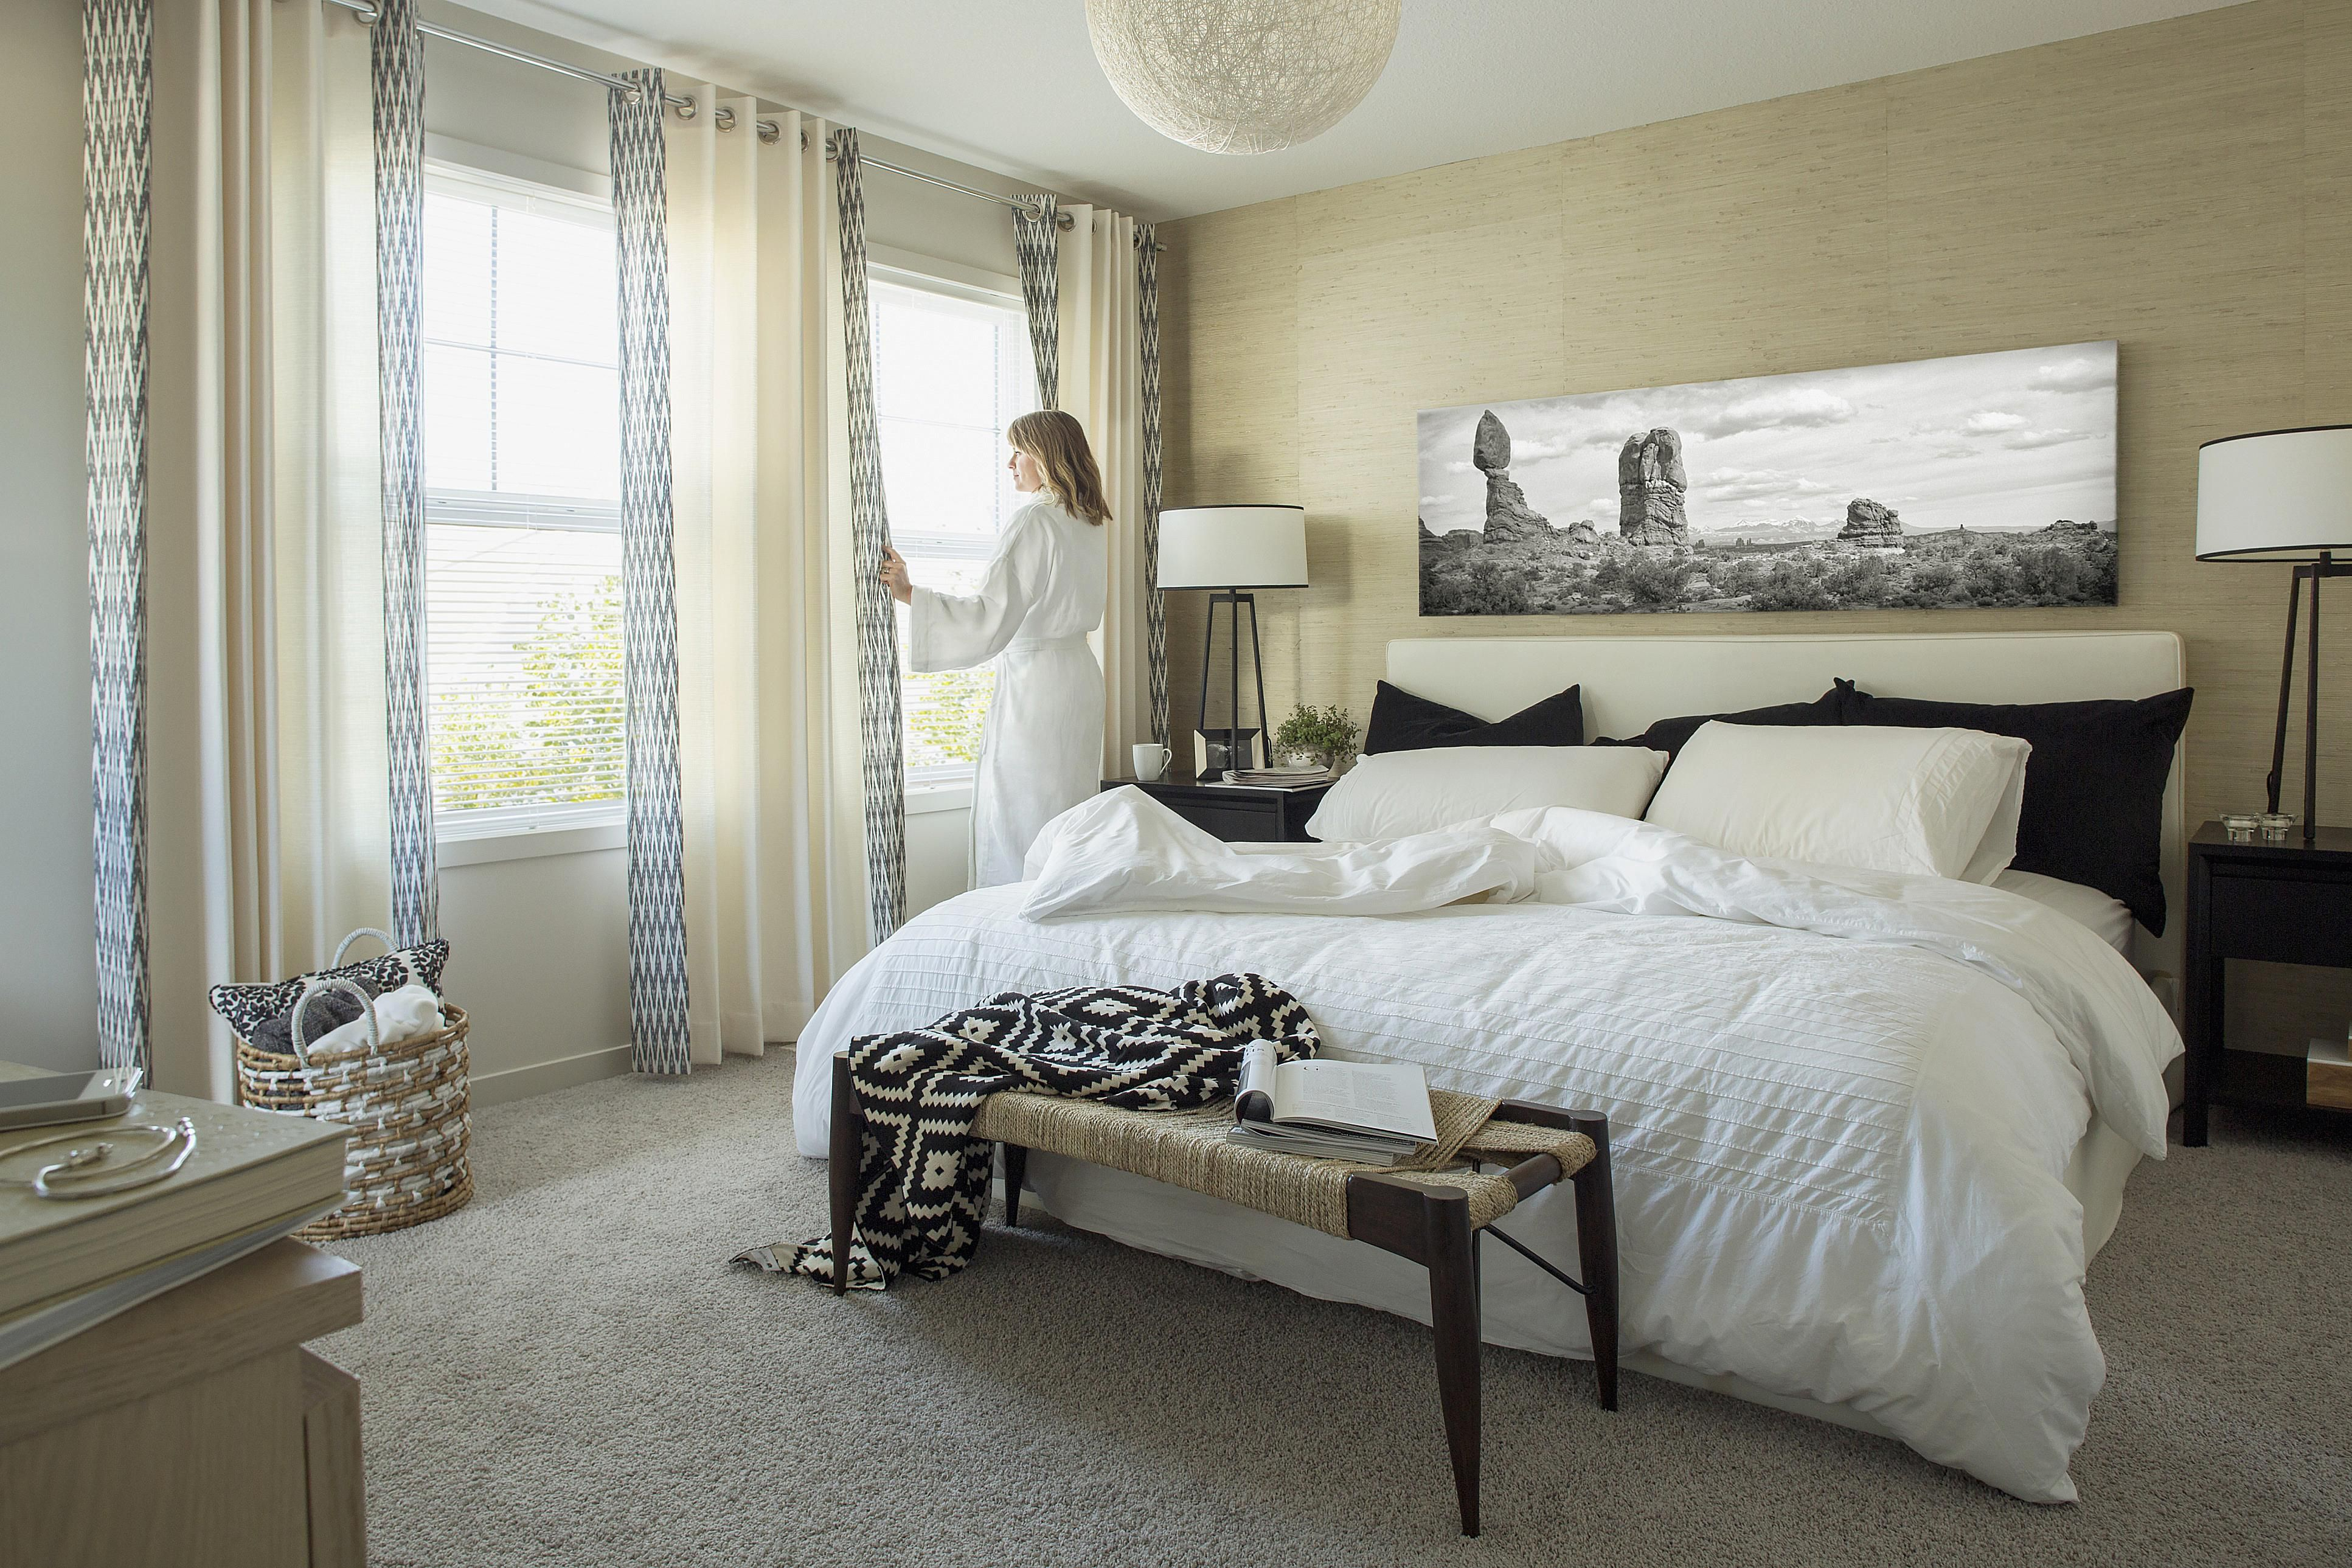 Tr traditional bedroom designs for couples - 7 Items Every Grown Up Bedroom Needs Kids Room Ideas